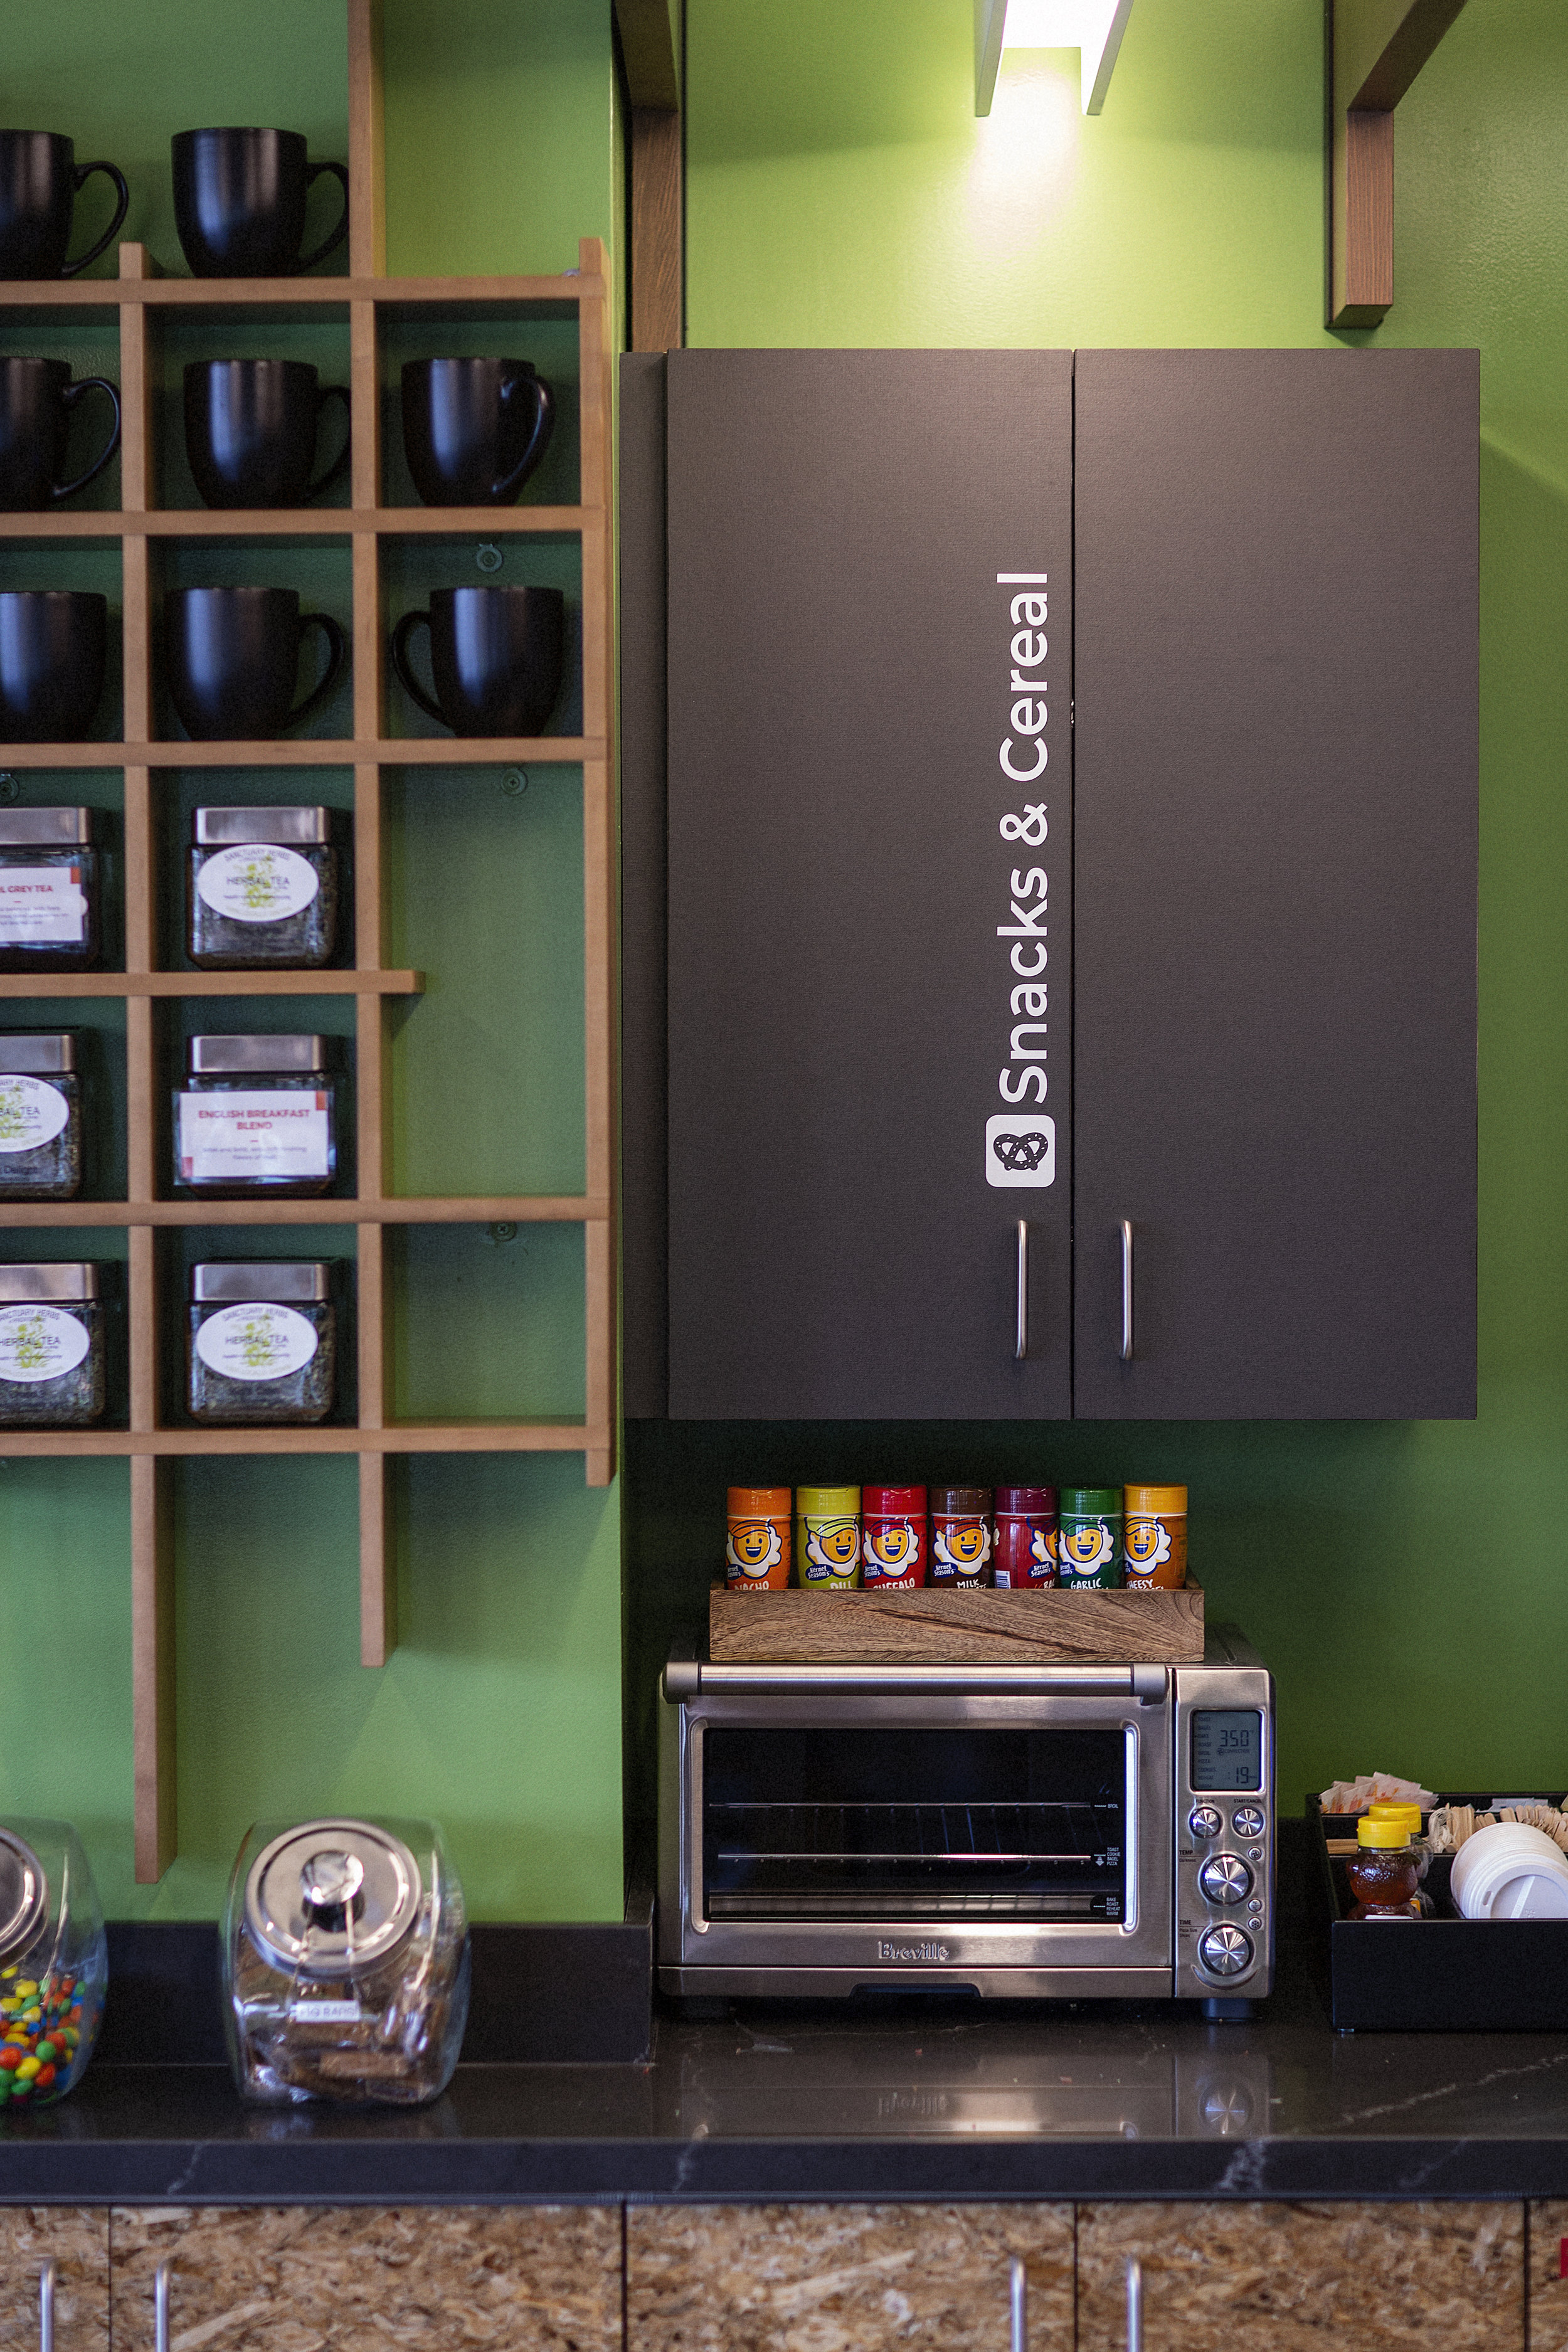 Kitchens stocked with Coffee, tea, sparkling water, and, snacks!